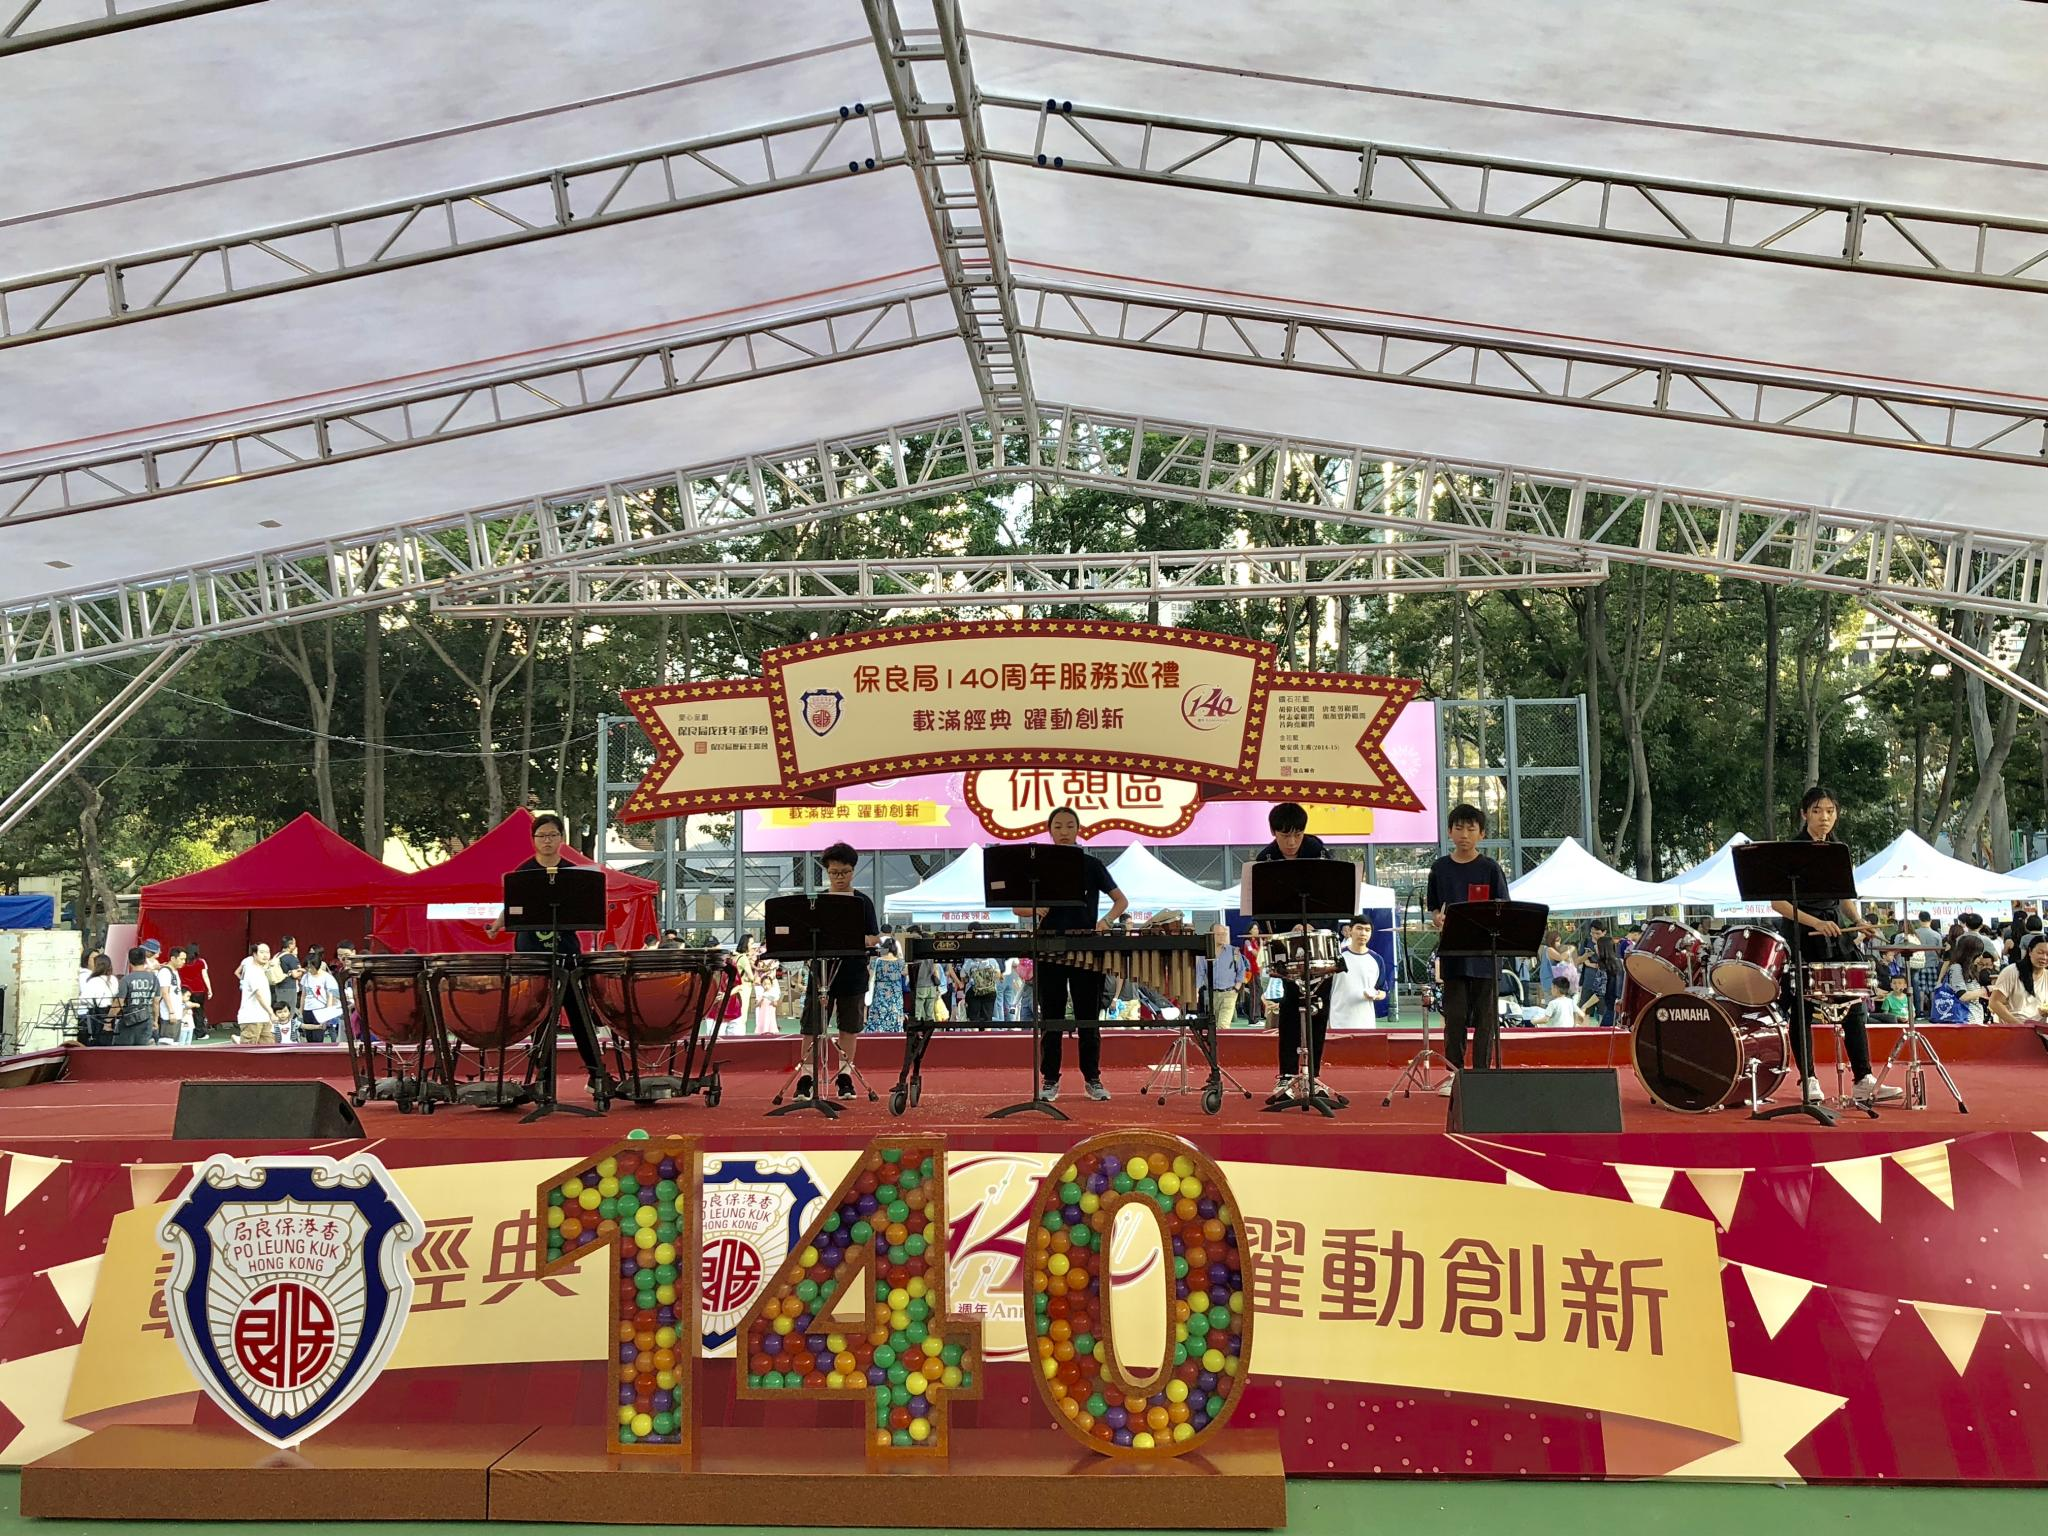 Students are performing on the stage.